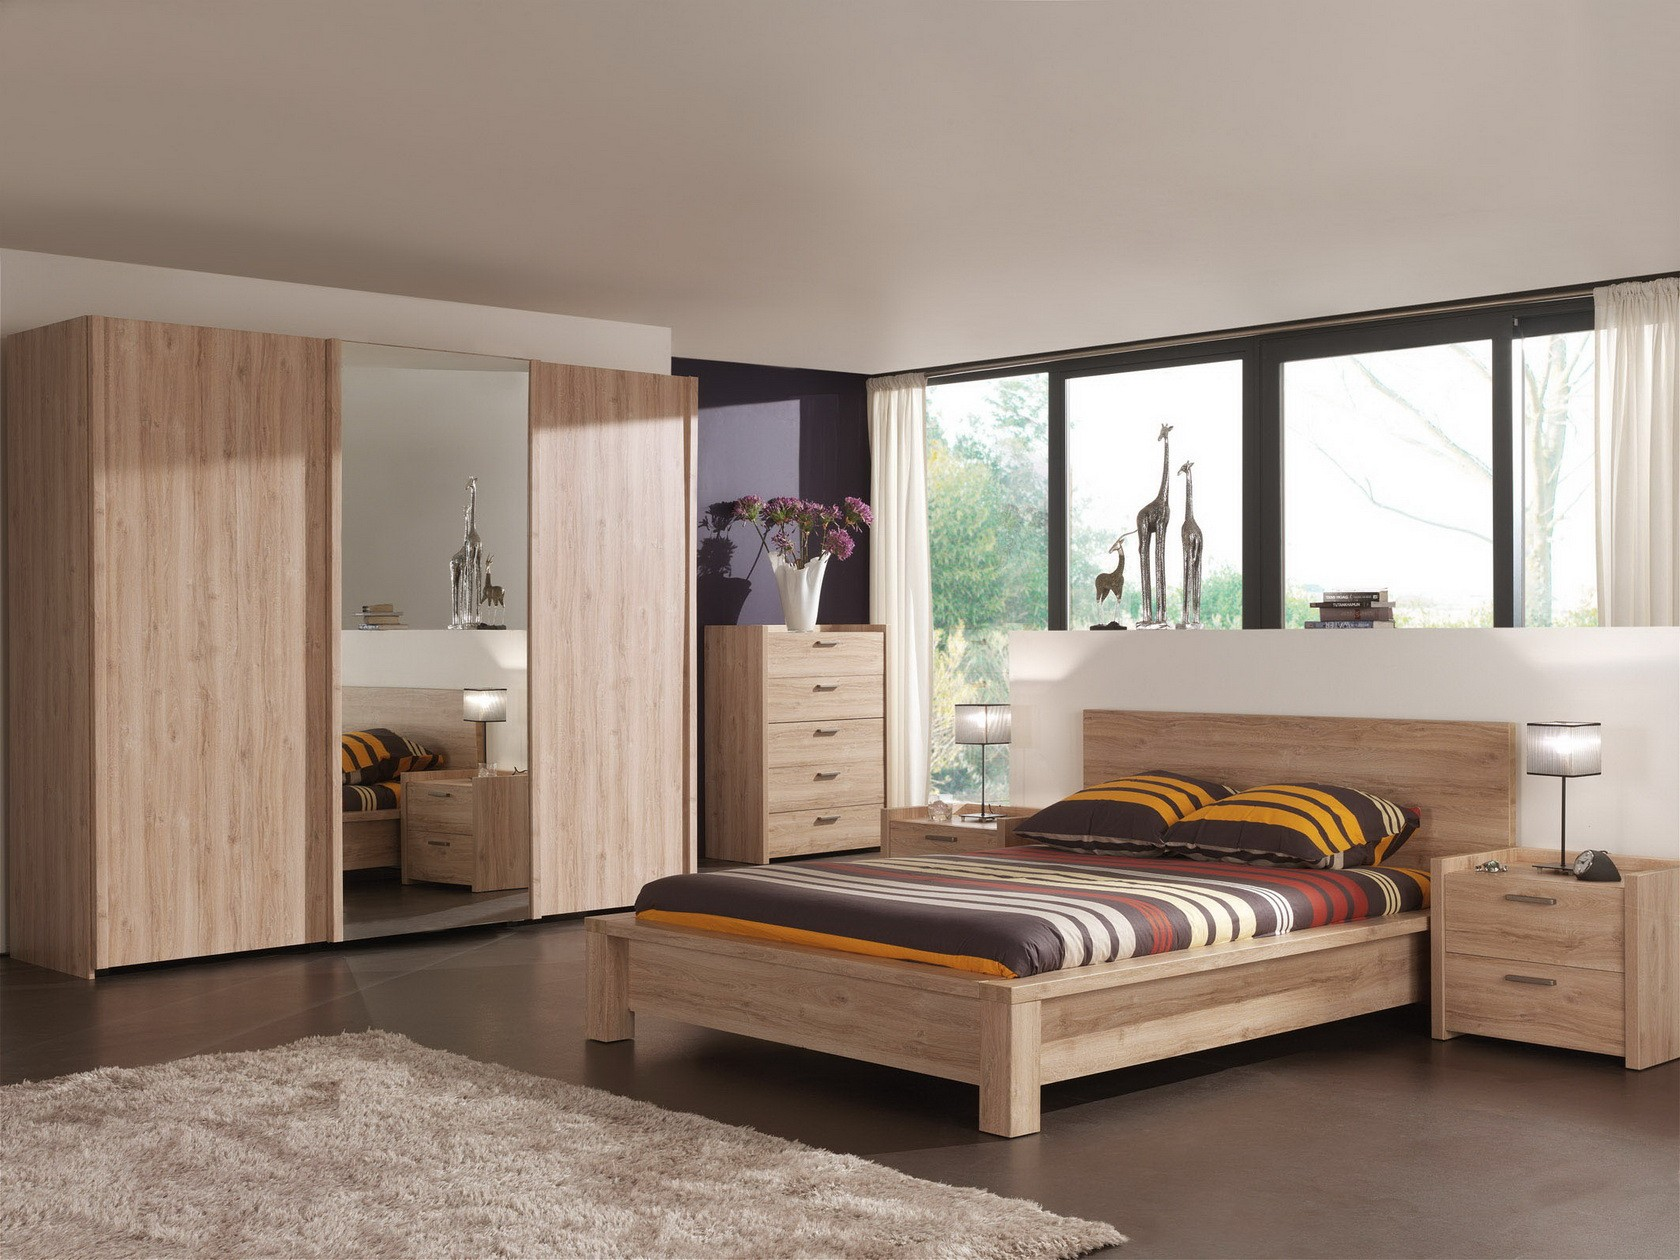 chambre a coucher habitat avec des id es int ressantes pour la conception de la. Black Bedroom Furniture Sets. Home Design Ideas